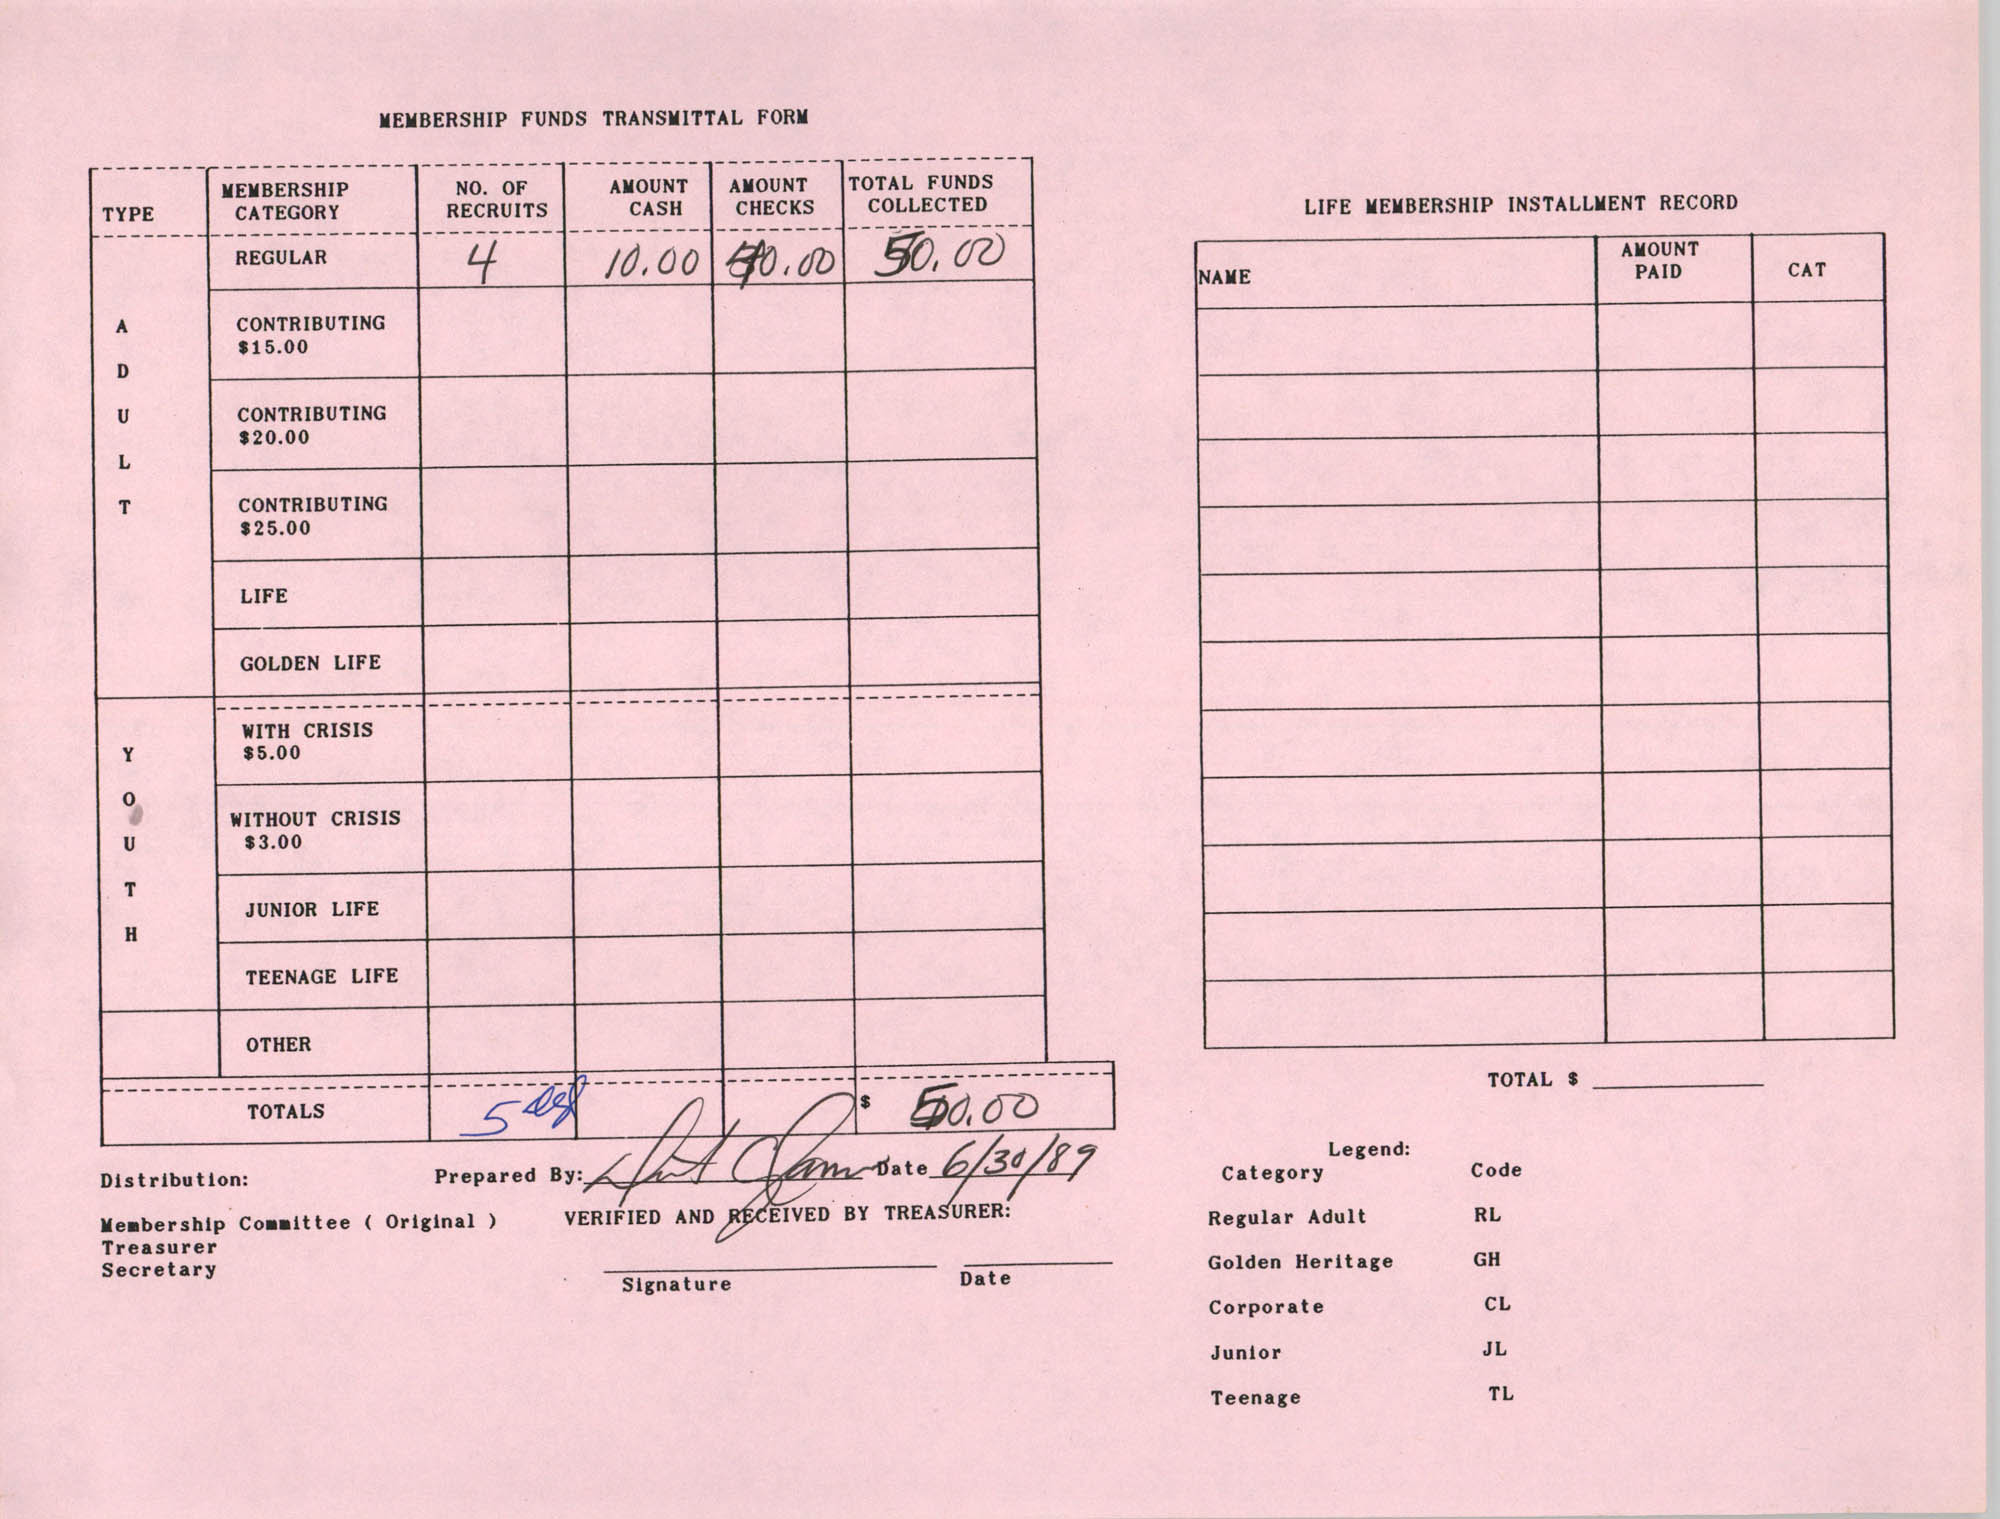 Charleston Branch of the NAACP Funds Transmittal Forms, June 1989, Page 6